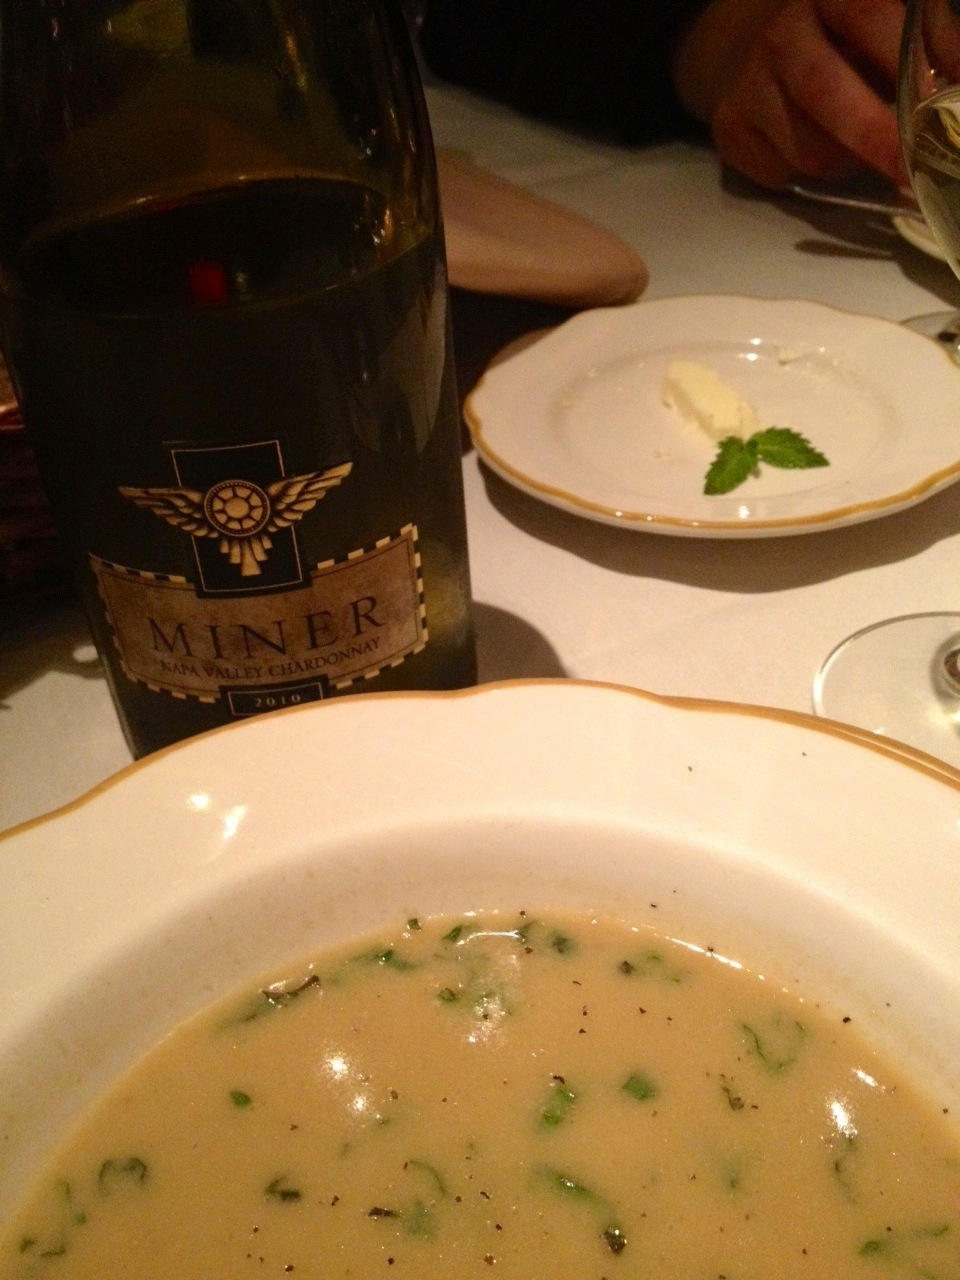 corn soup and Miner Family Chardonnay